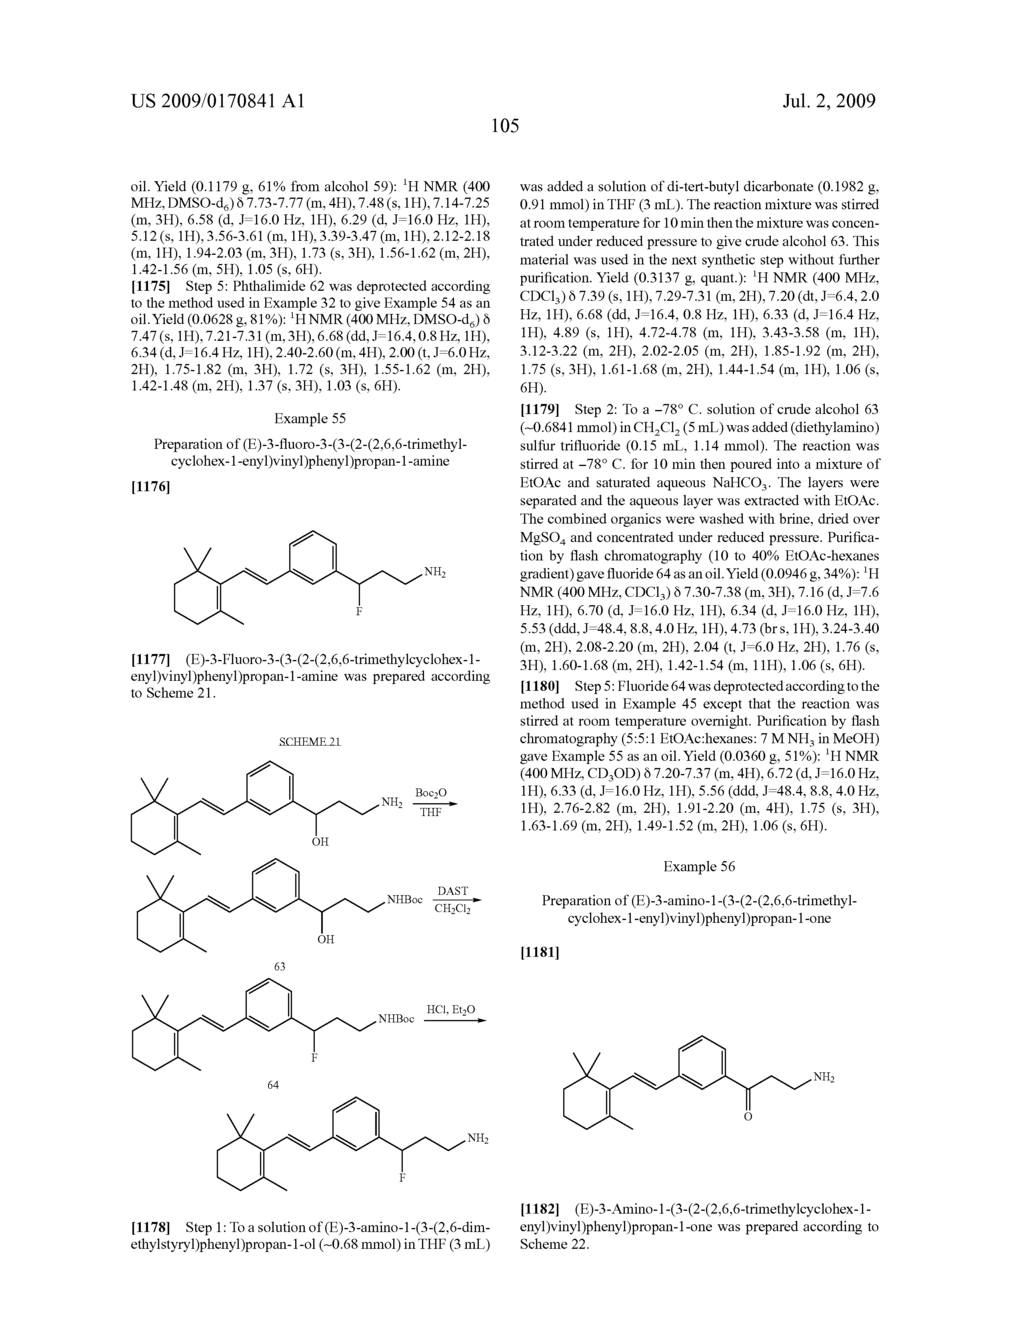 Styrenyl Derivative Compounds for Treating Ophthalmic Diseases and Disorders - diagram, schematic, and image 108